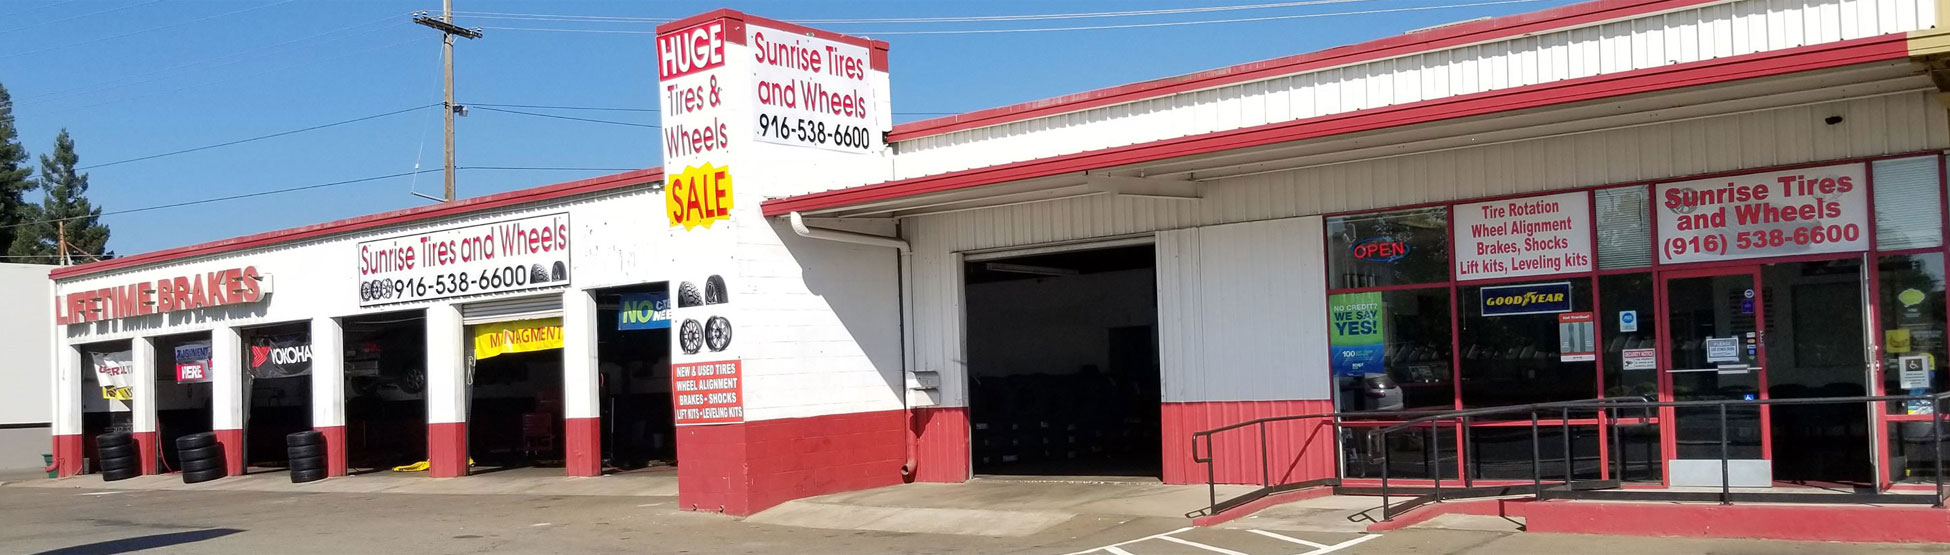 Tire Places Open Today >> Tires Wheels Lift Kits In Gold River Ca Sunrise Tires And Wheels